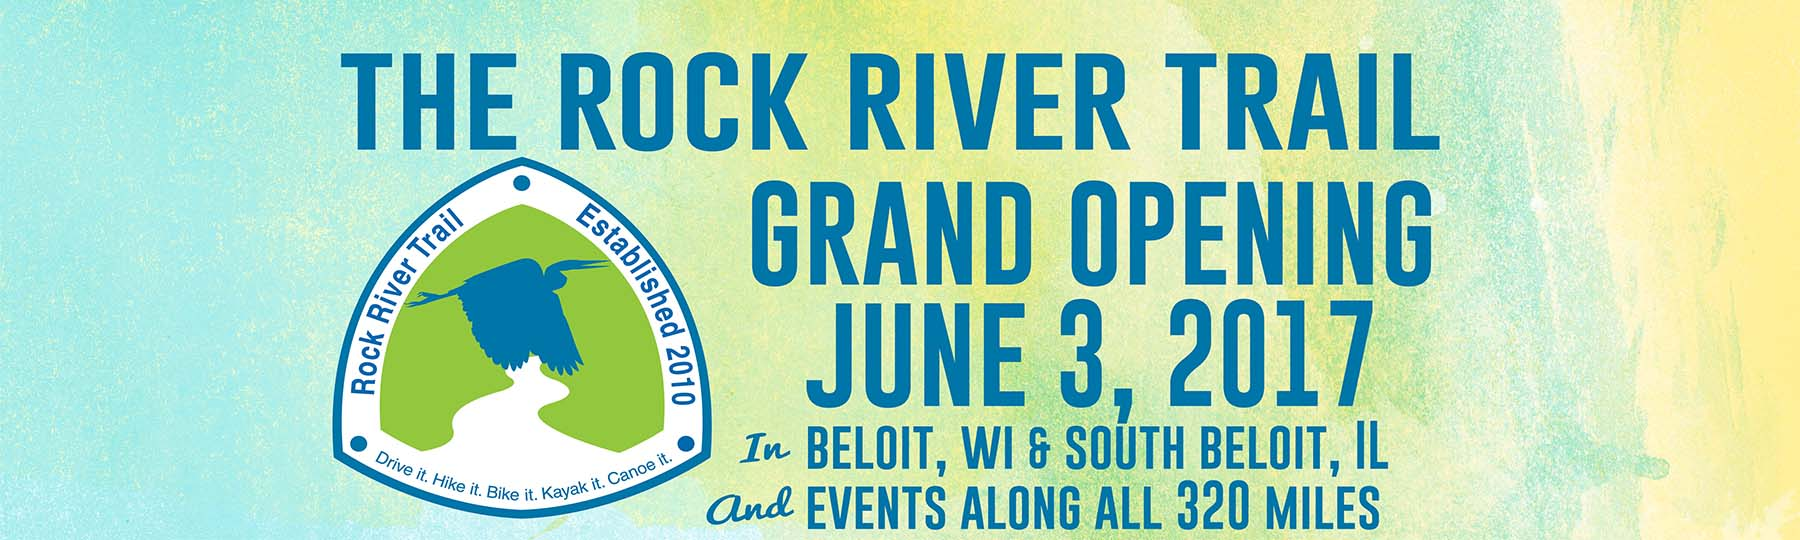 rock river trail grand opening 2